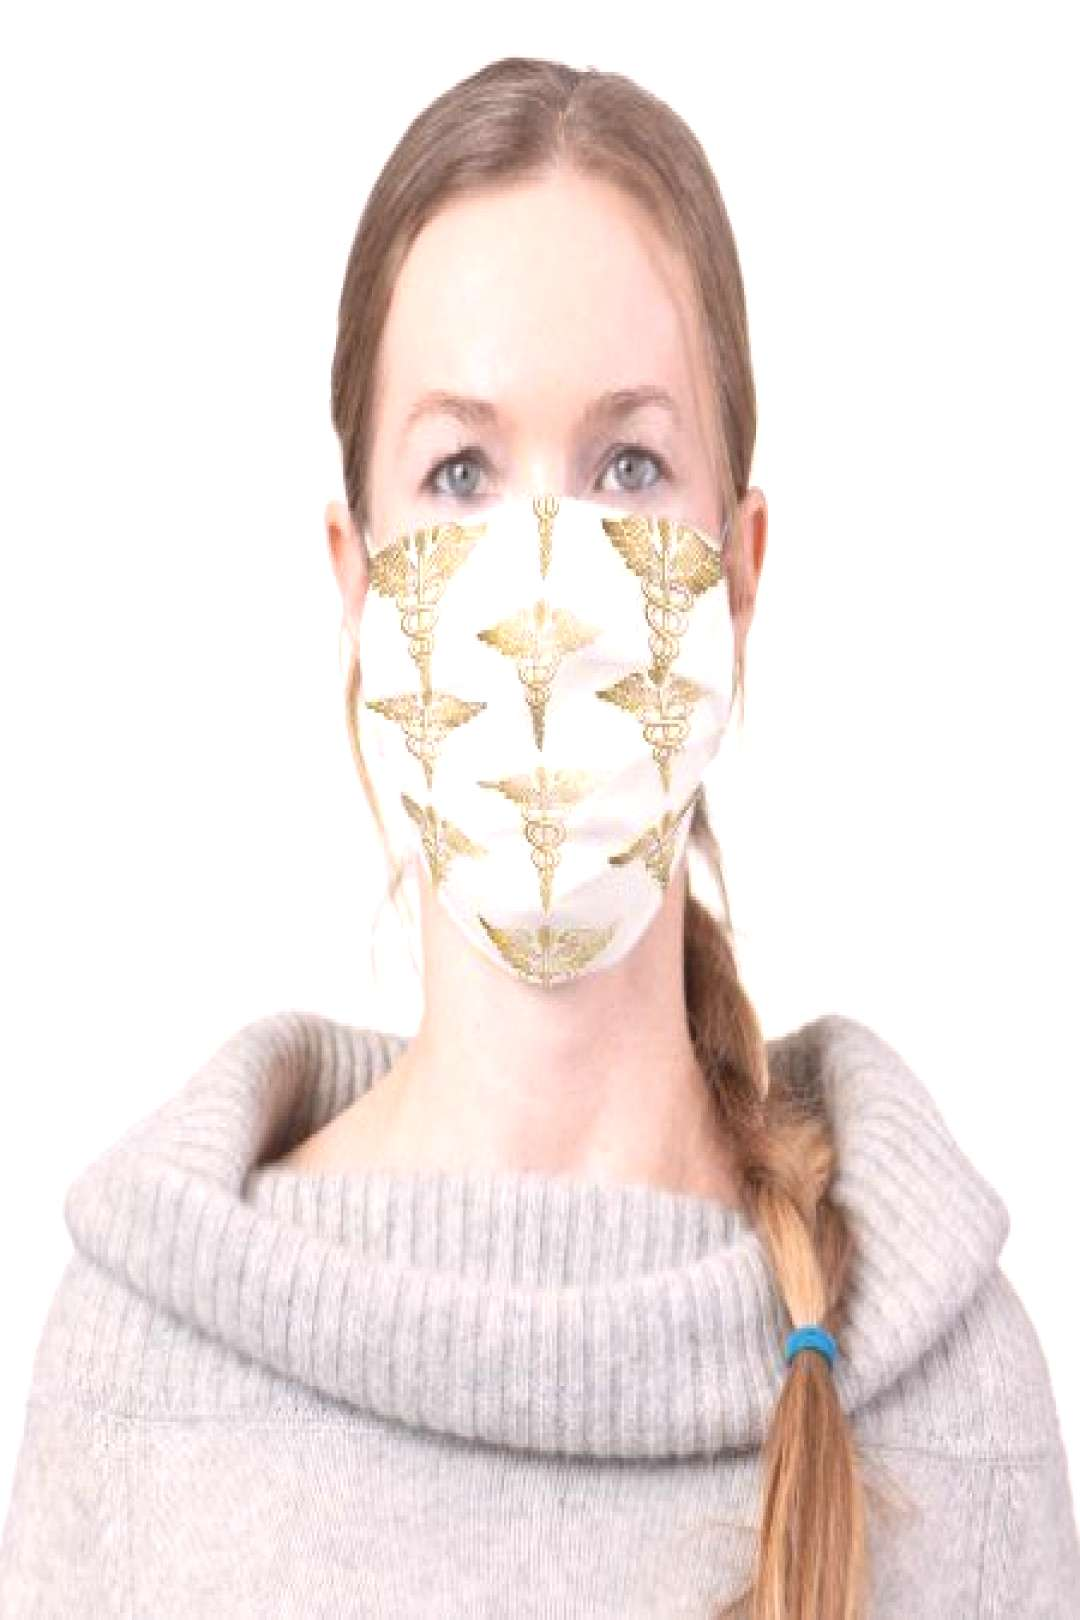 Gold Caduceus Medical Symbol Pattern on White Cloth Face Mask - tap/click to personalize and buy